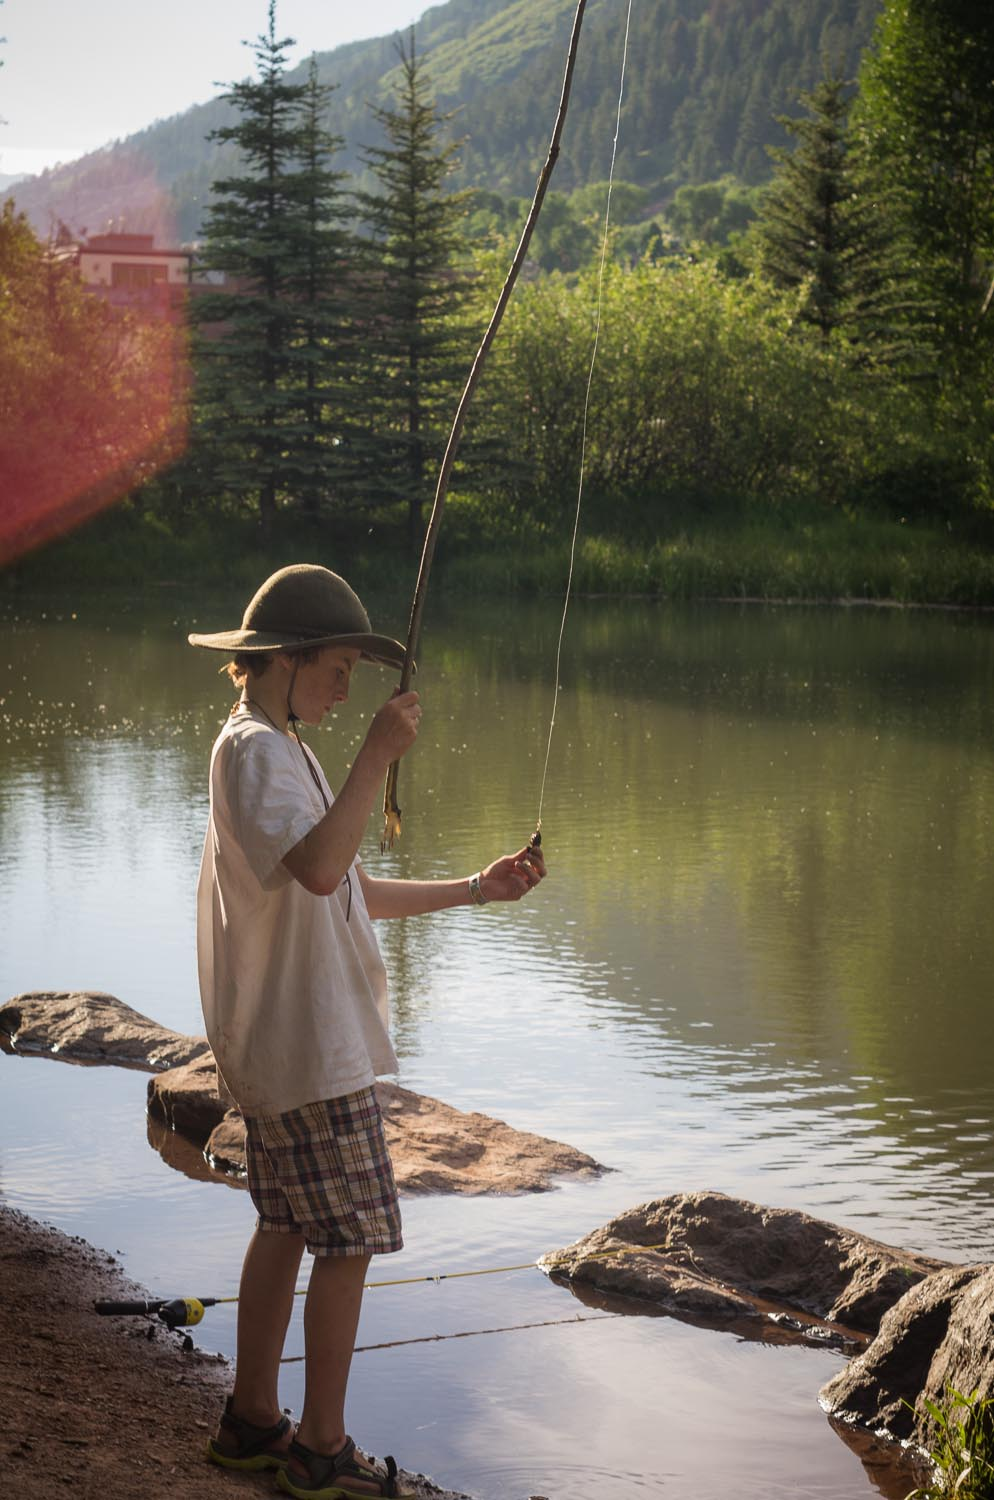 Boy with Homemade Fishing Pole